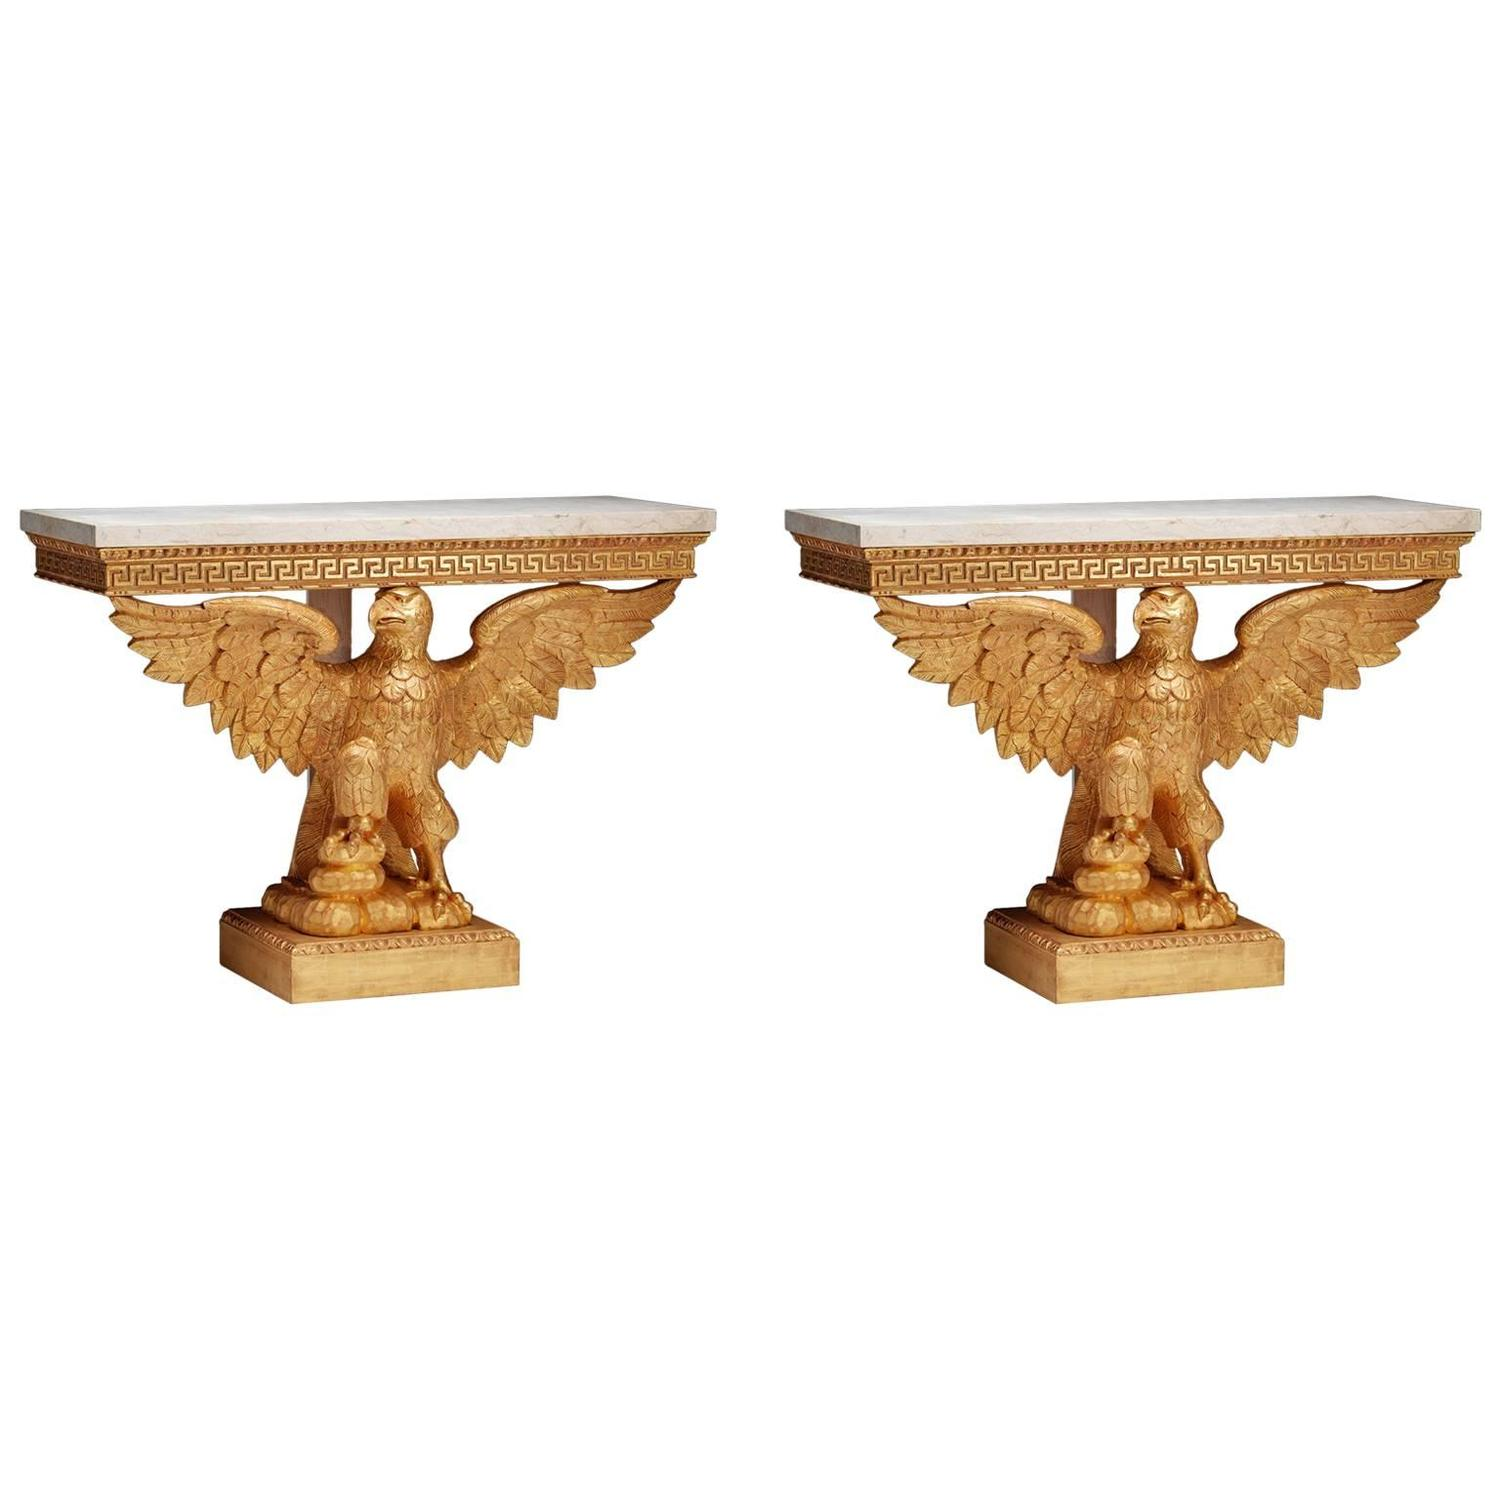 Eagle Console Tables In The Manner Of William Kent